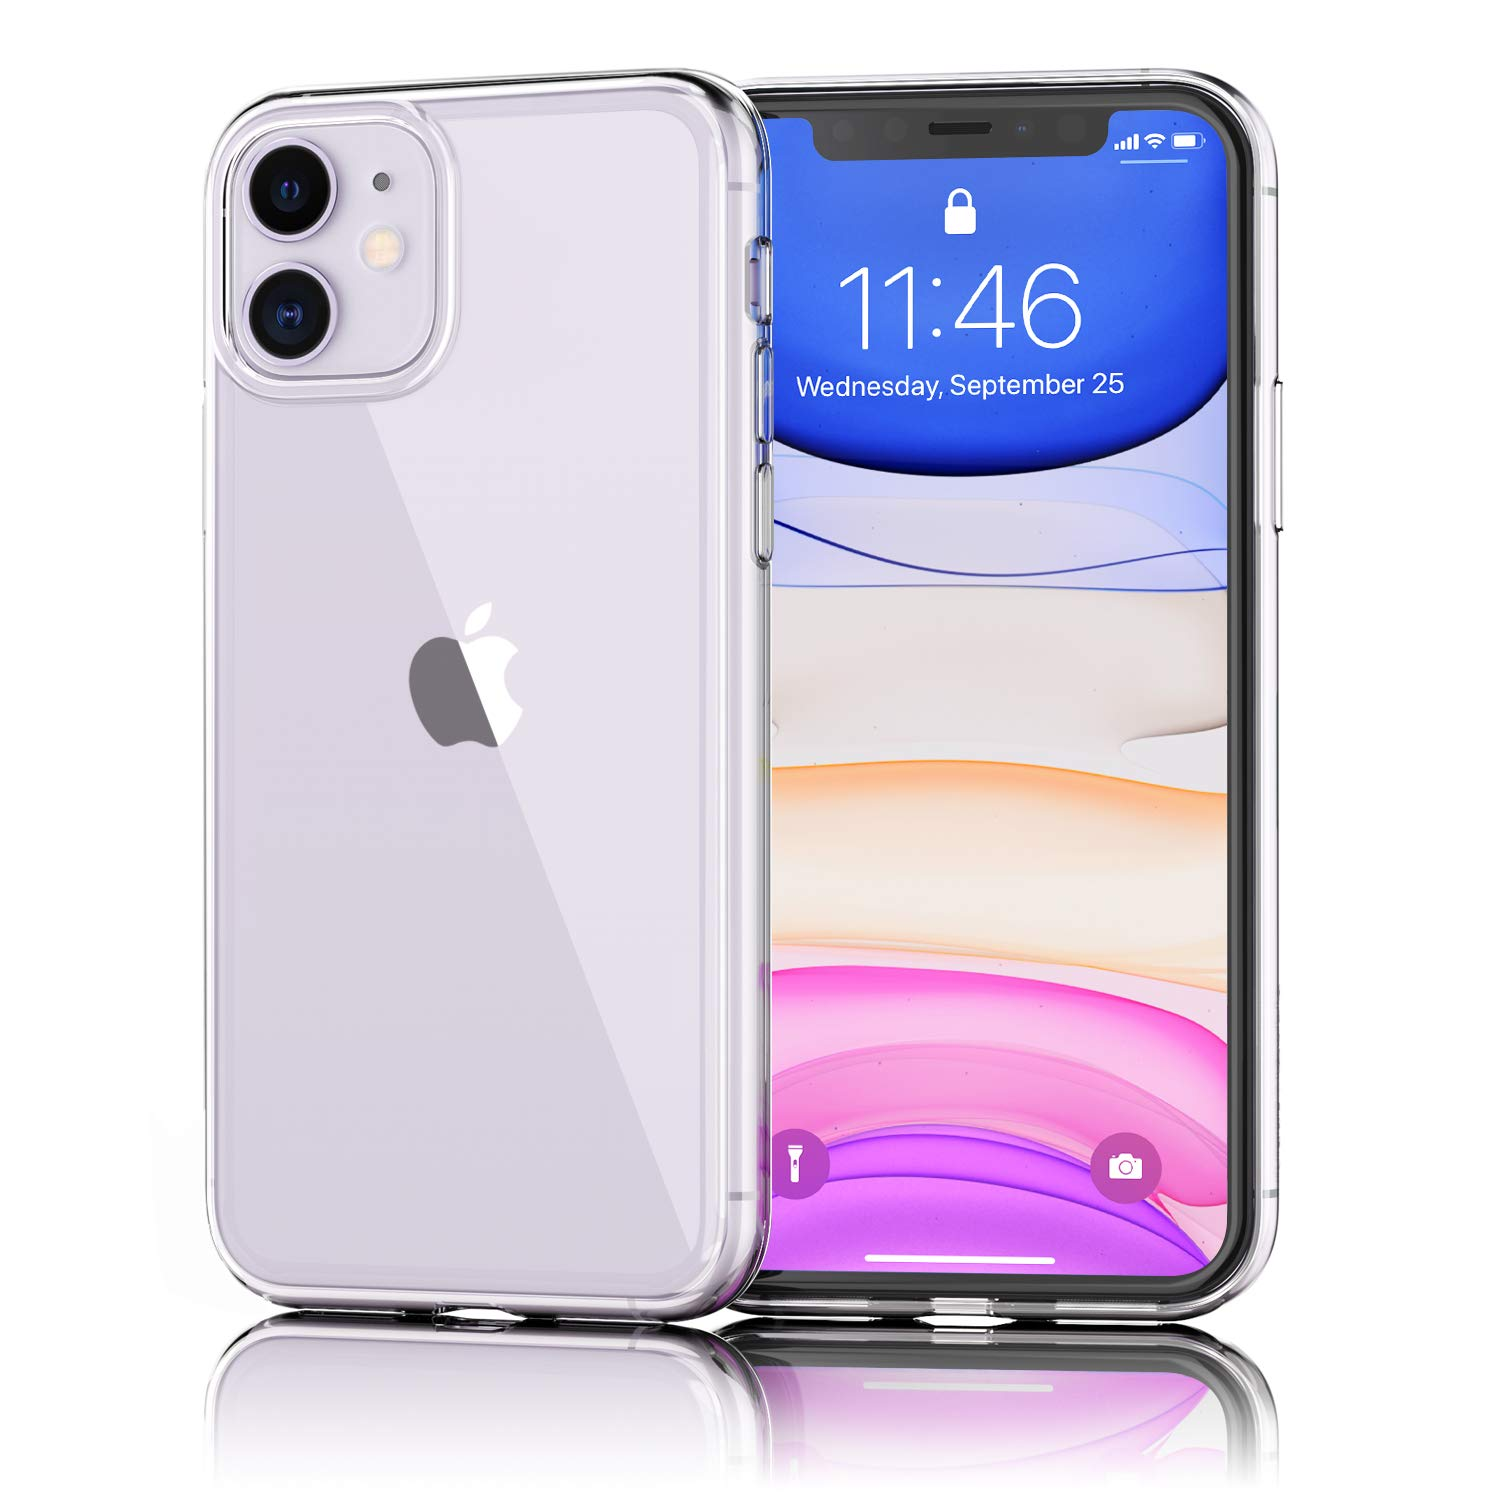 UNBREAKcable iPhone 11 Case, Crystal Clear, Ultra-Thin Slim Soft TPU Silicone Protective Transparent Case Cover for 6.1-inch iPhone 11 (2019), Dustproof & Anti-Yellow